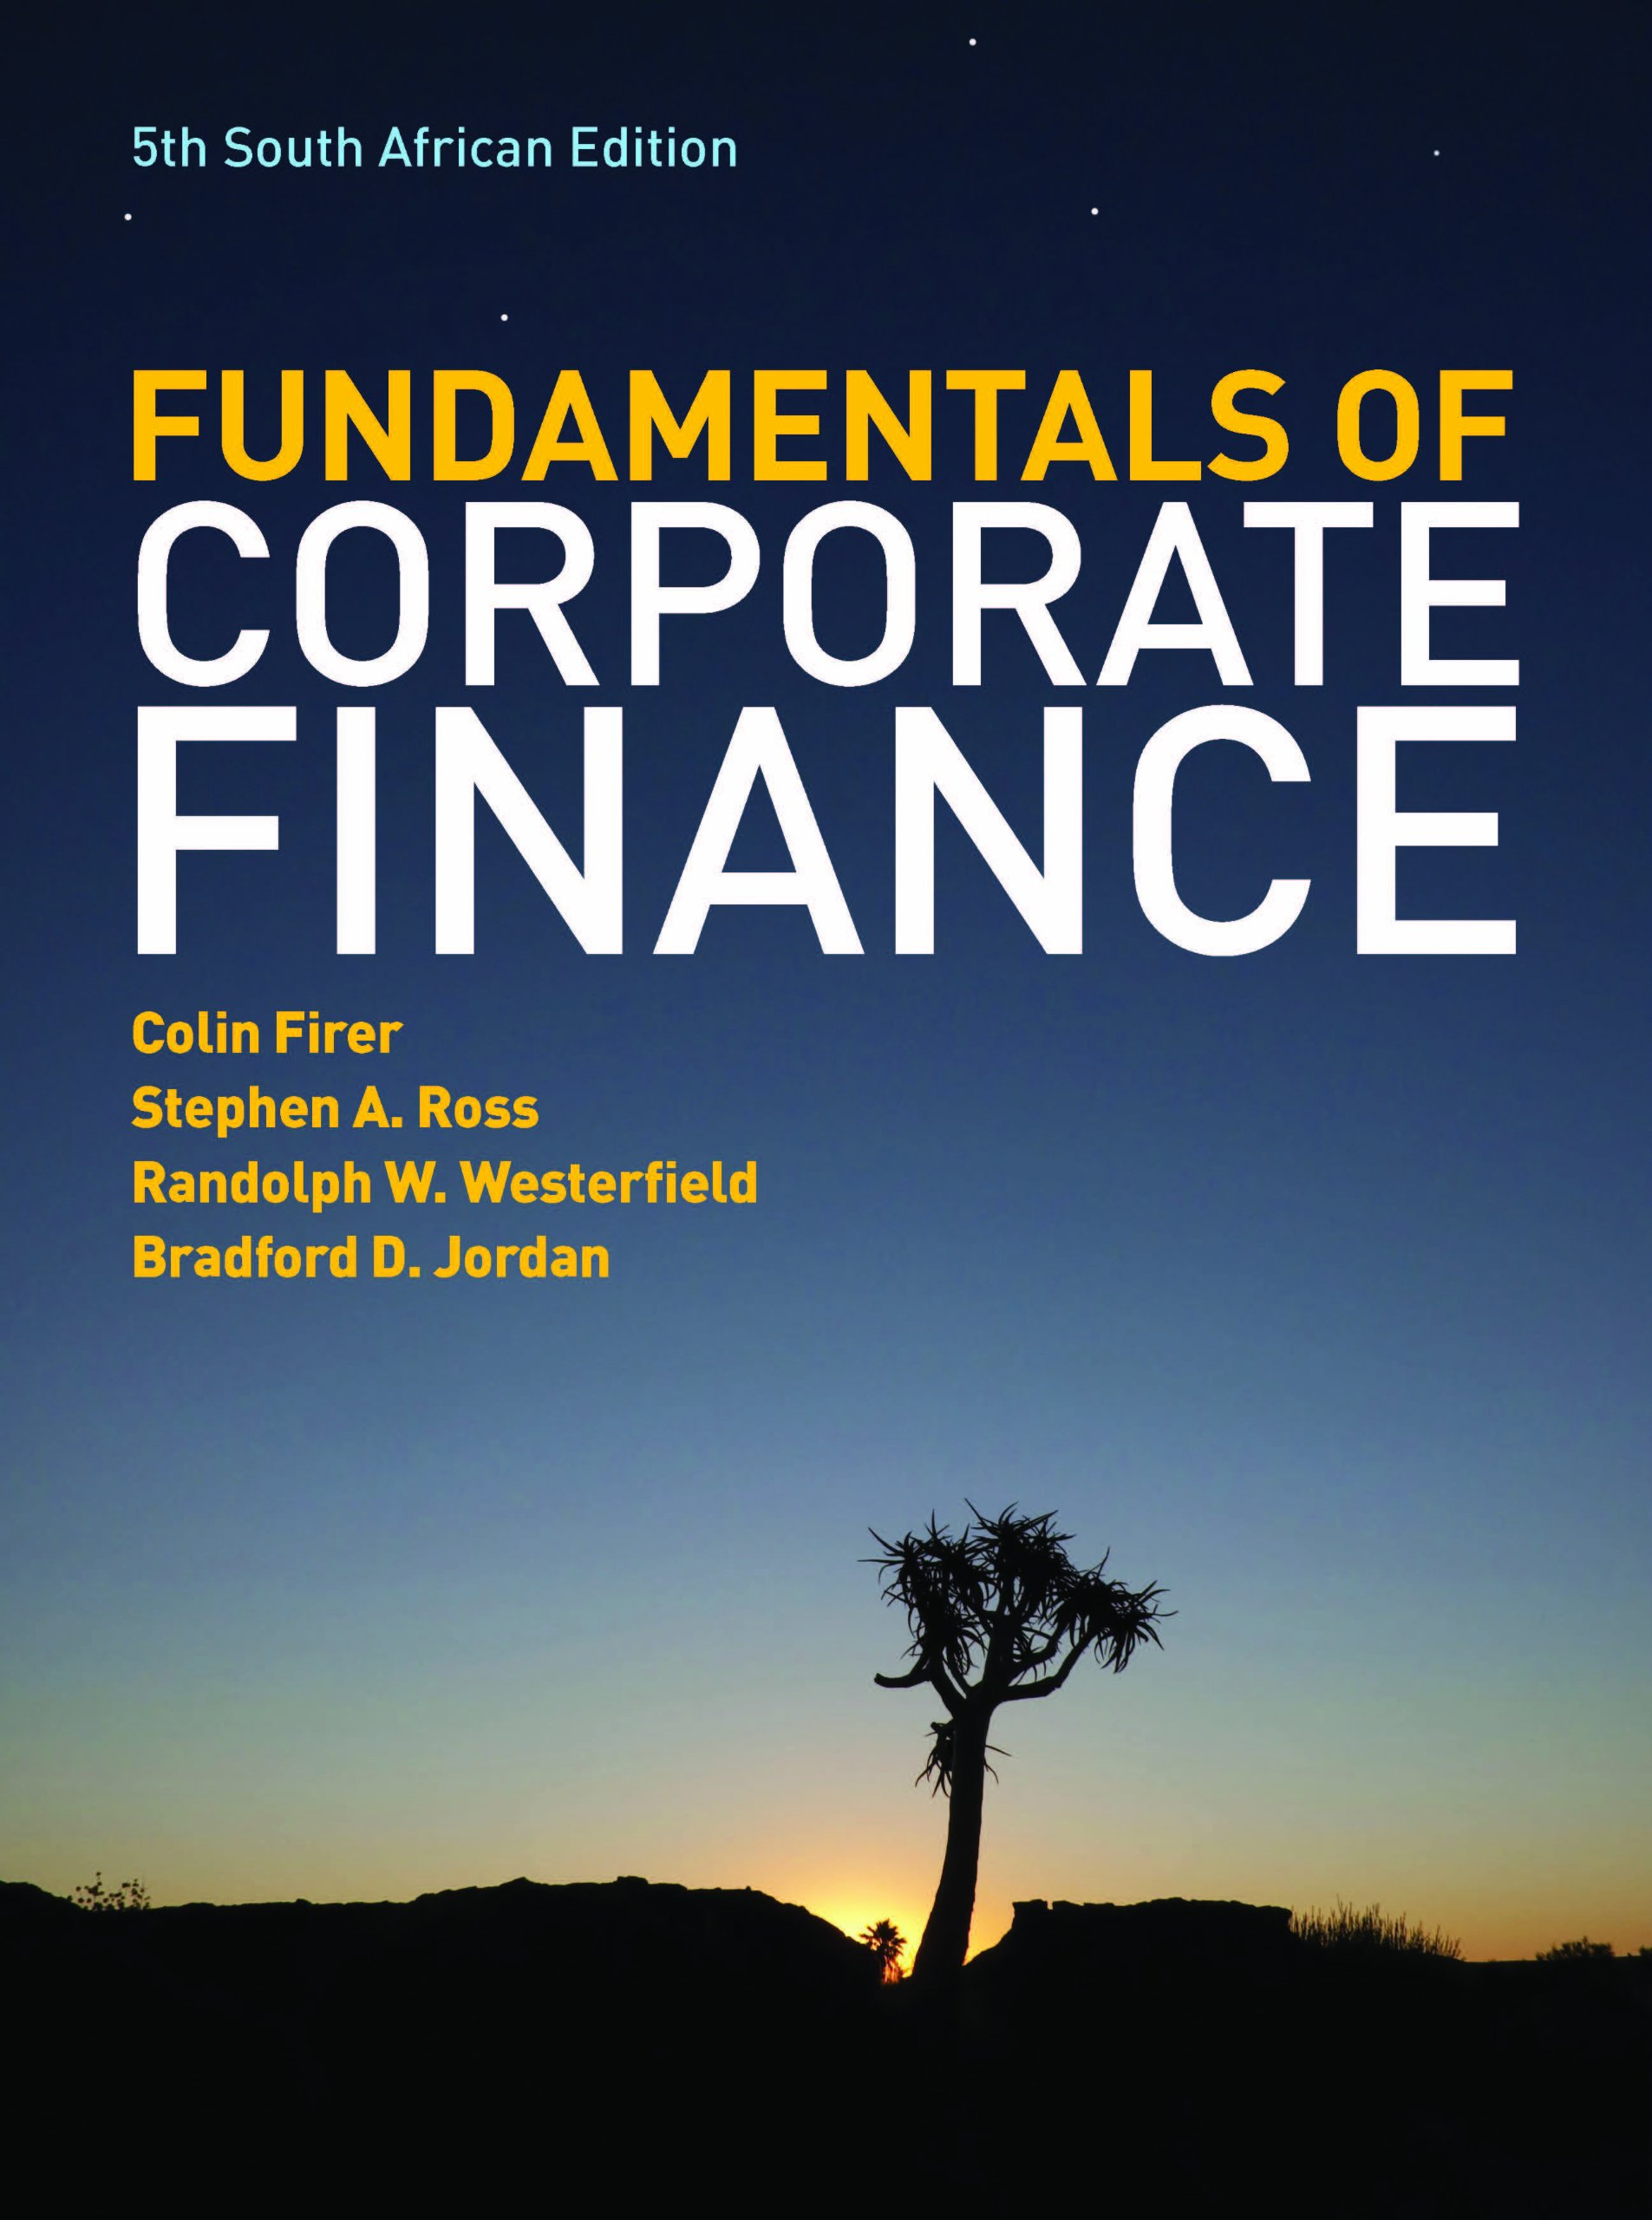 The fundamentals of corporate finance south african edition colin the fundamentals of corporate finance south african edition colin firer stephen a ross randolph w westerfield bradford d jordan 9780077134525 fandeluxe Gallery